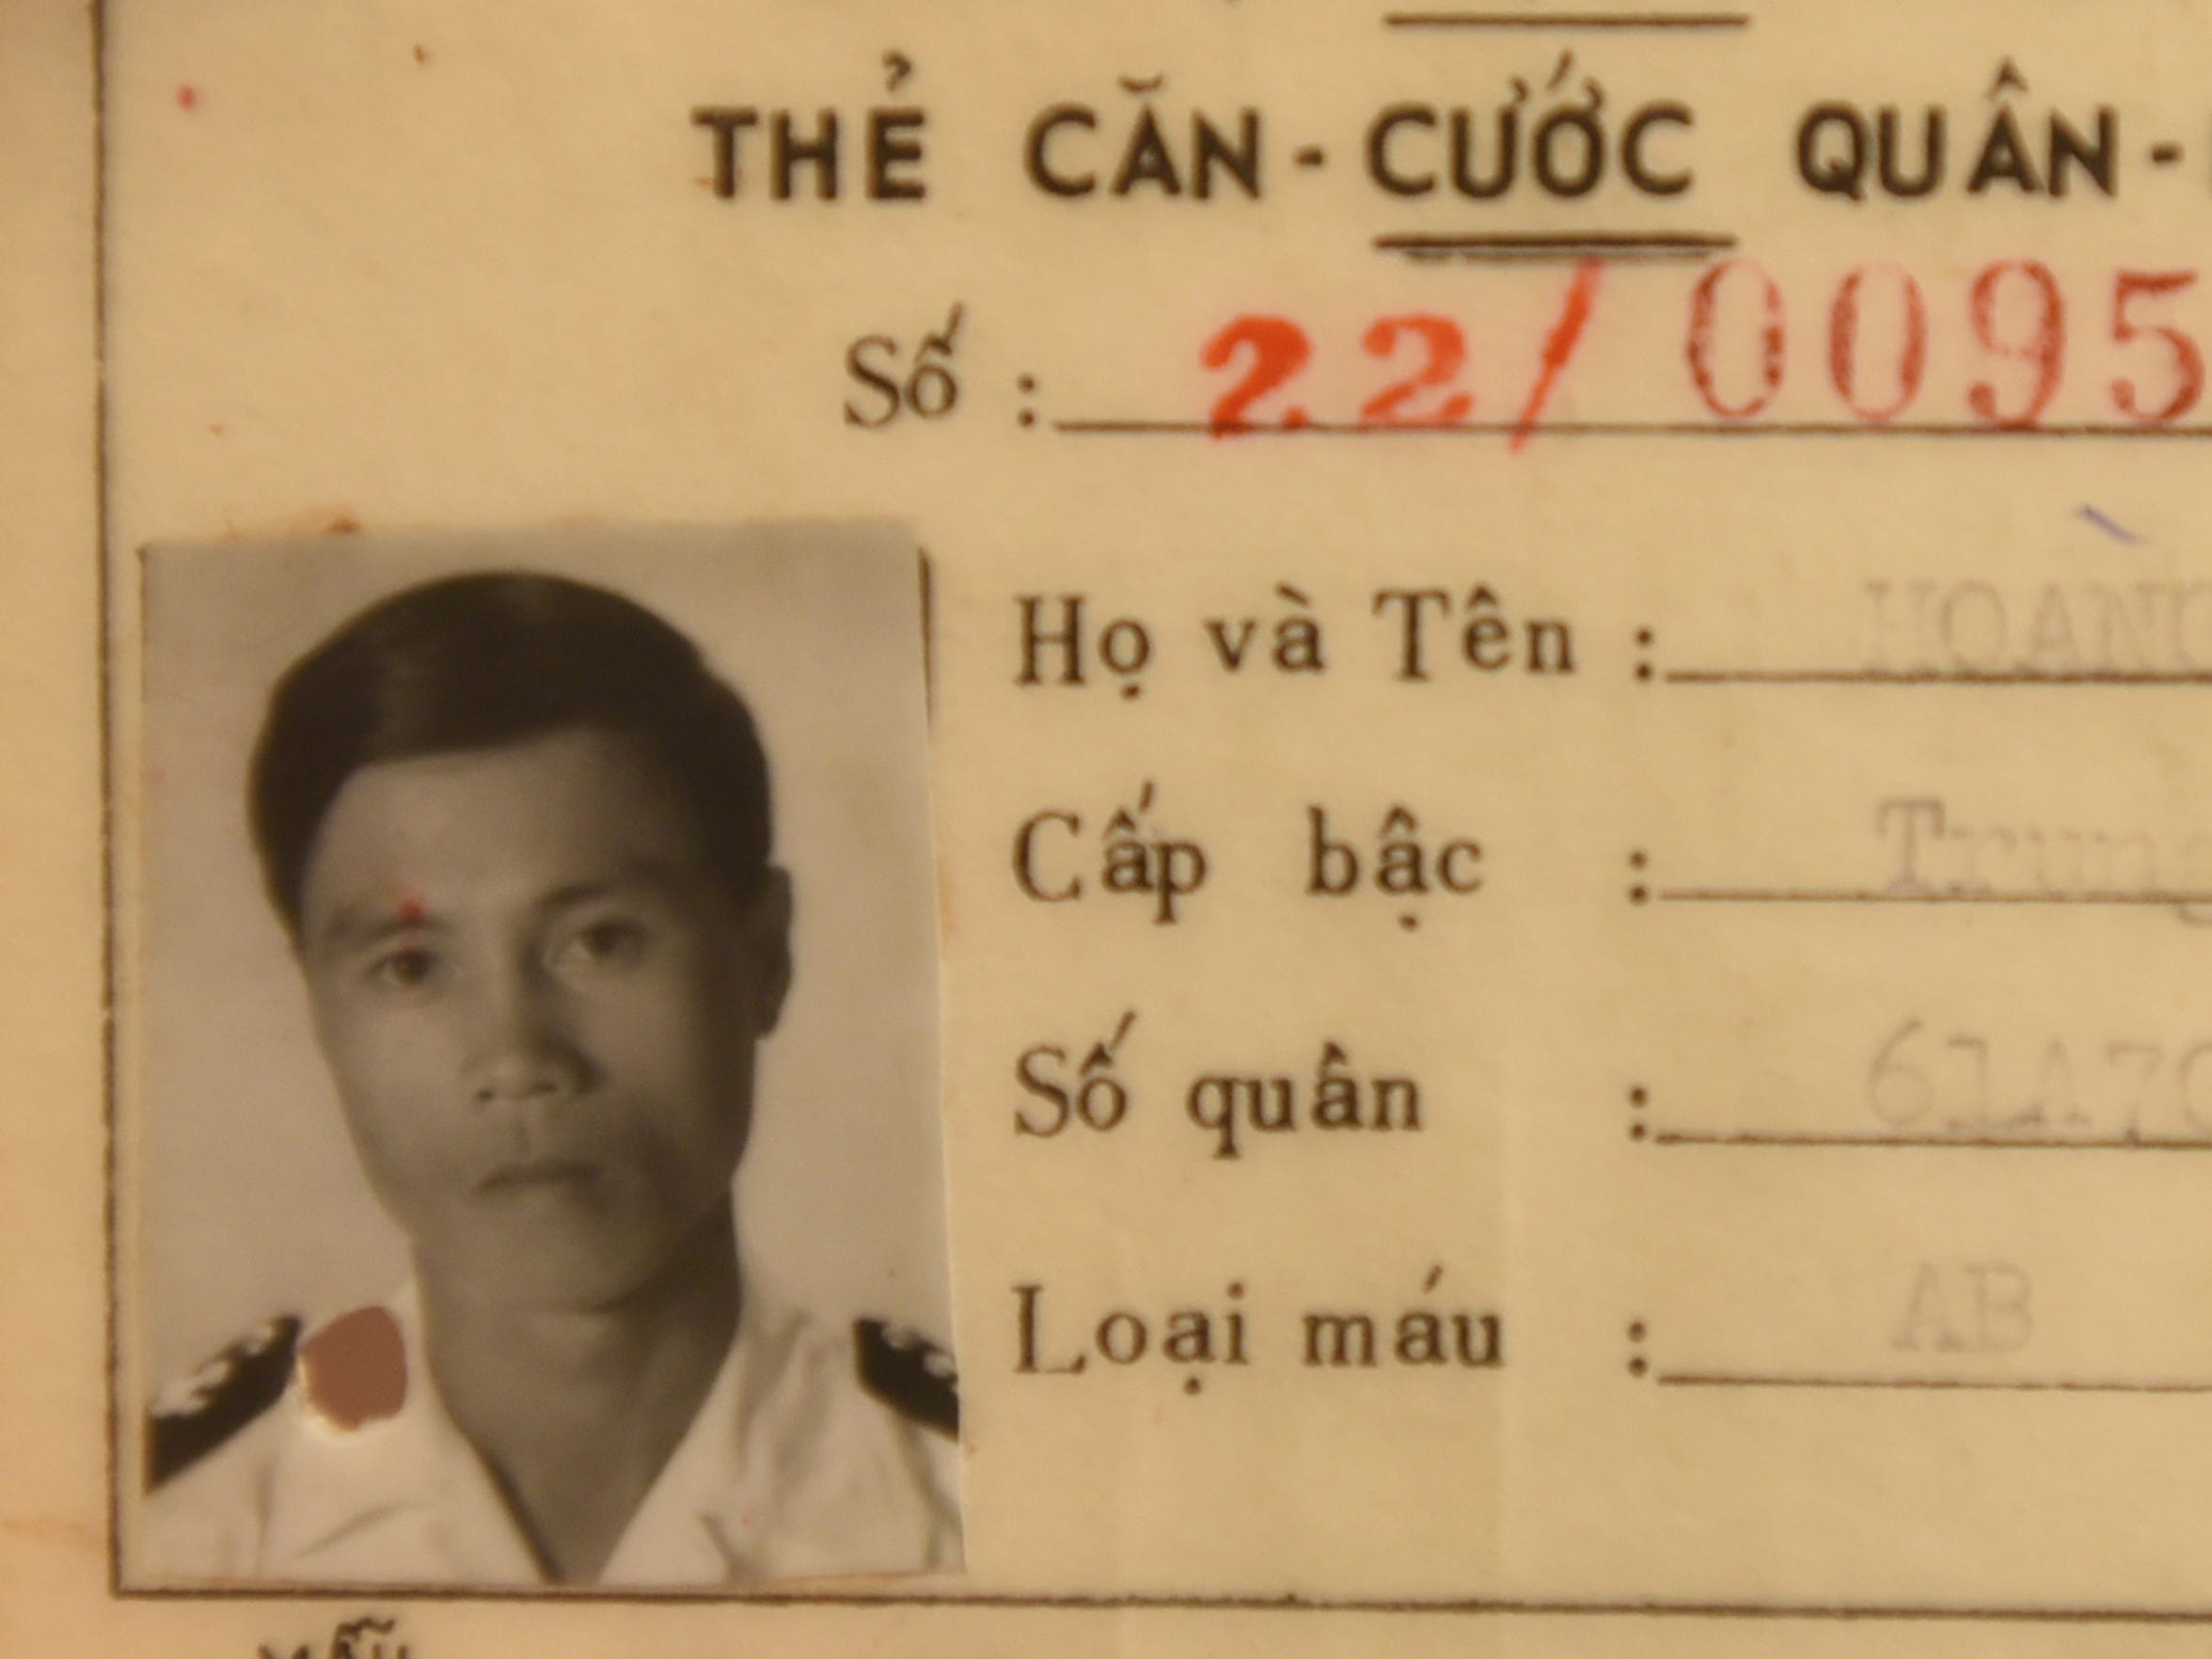 Binh Hoang, a former sailor with the South Vietnamese Navy, fled with his family to Guam in 1975.